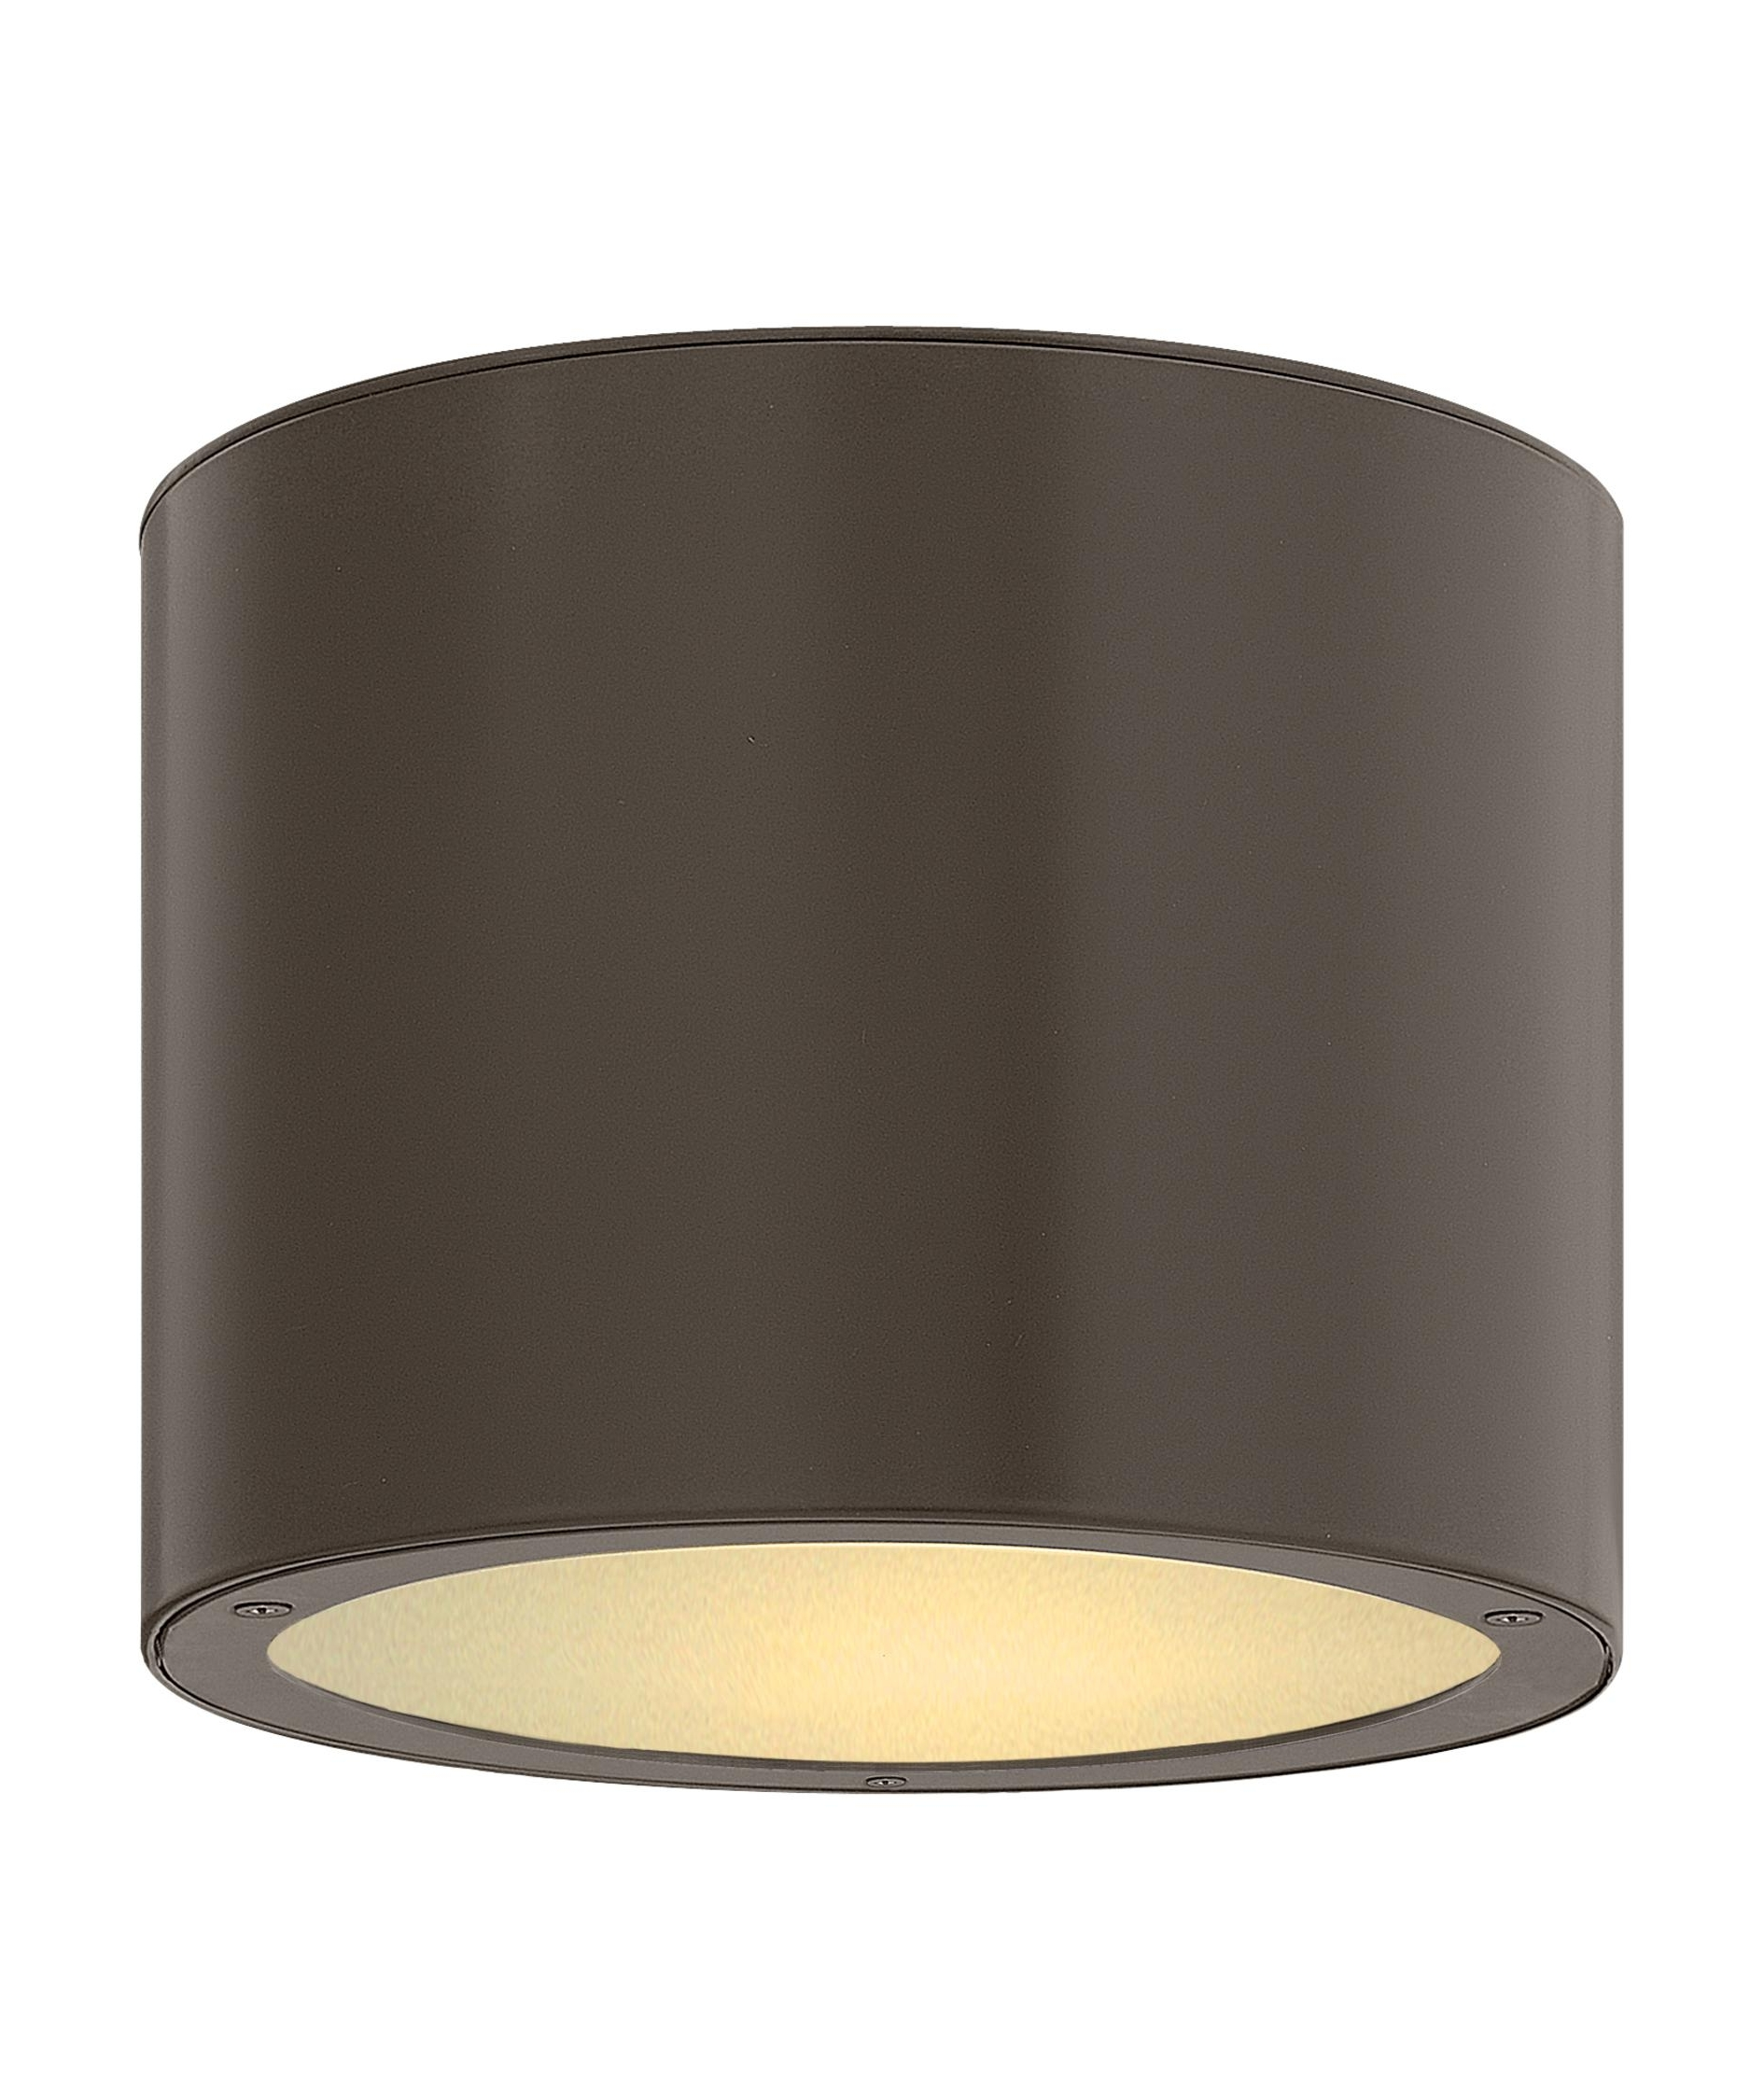 Outdoor Ceiling Mount Led Lights Inside Latest Hinkley Lighting 1663 Luna 8 Inch Wide 1 Light Outdoor Flush Mount (View 12 of 20)